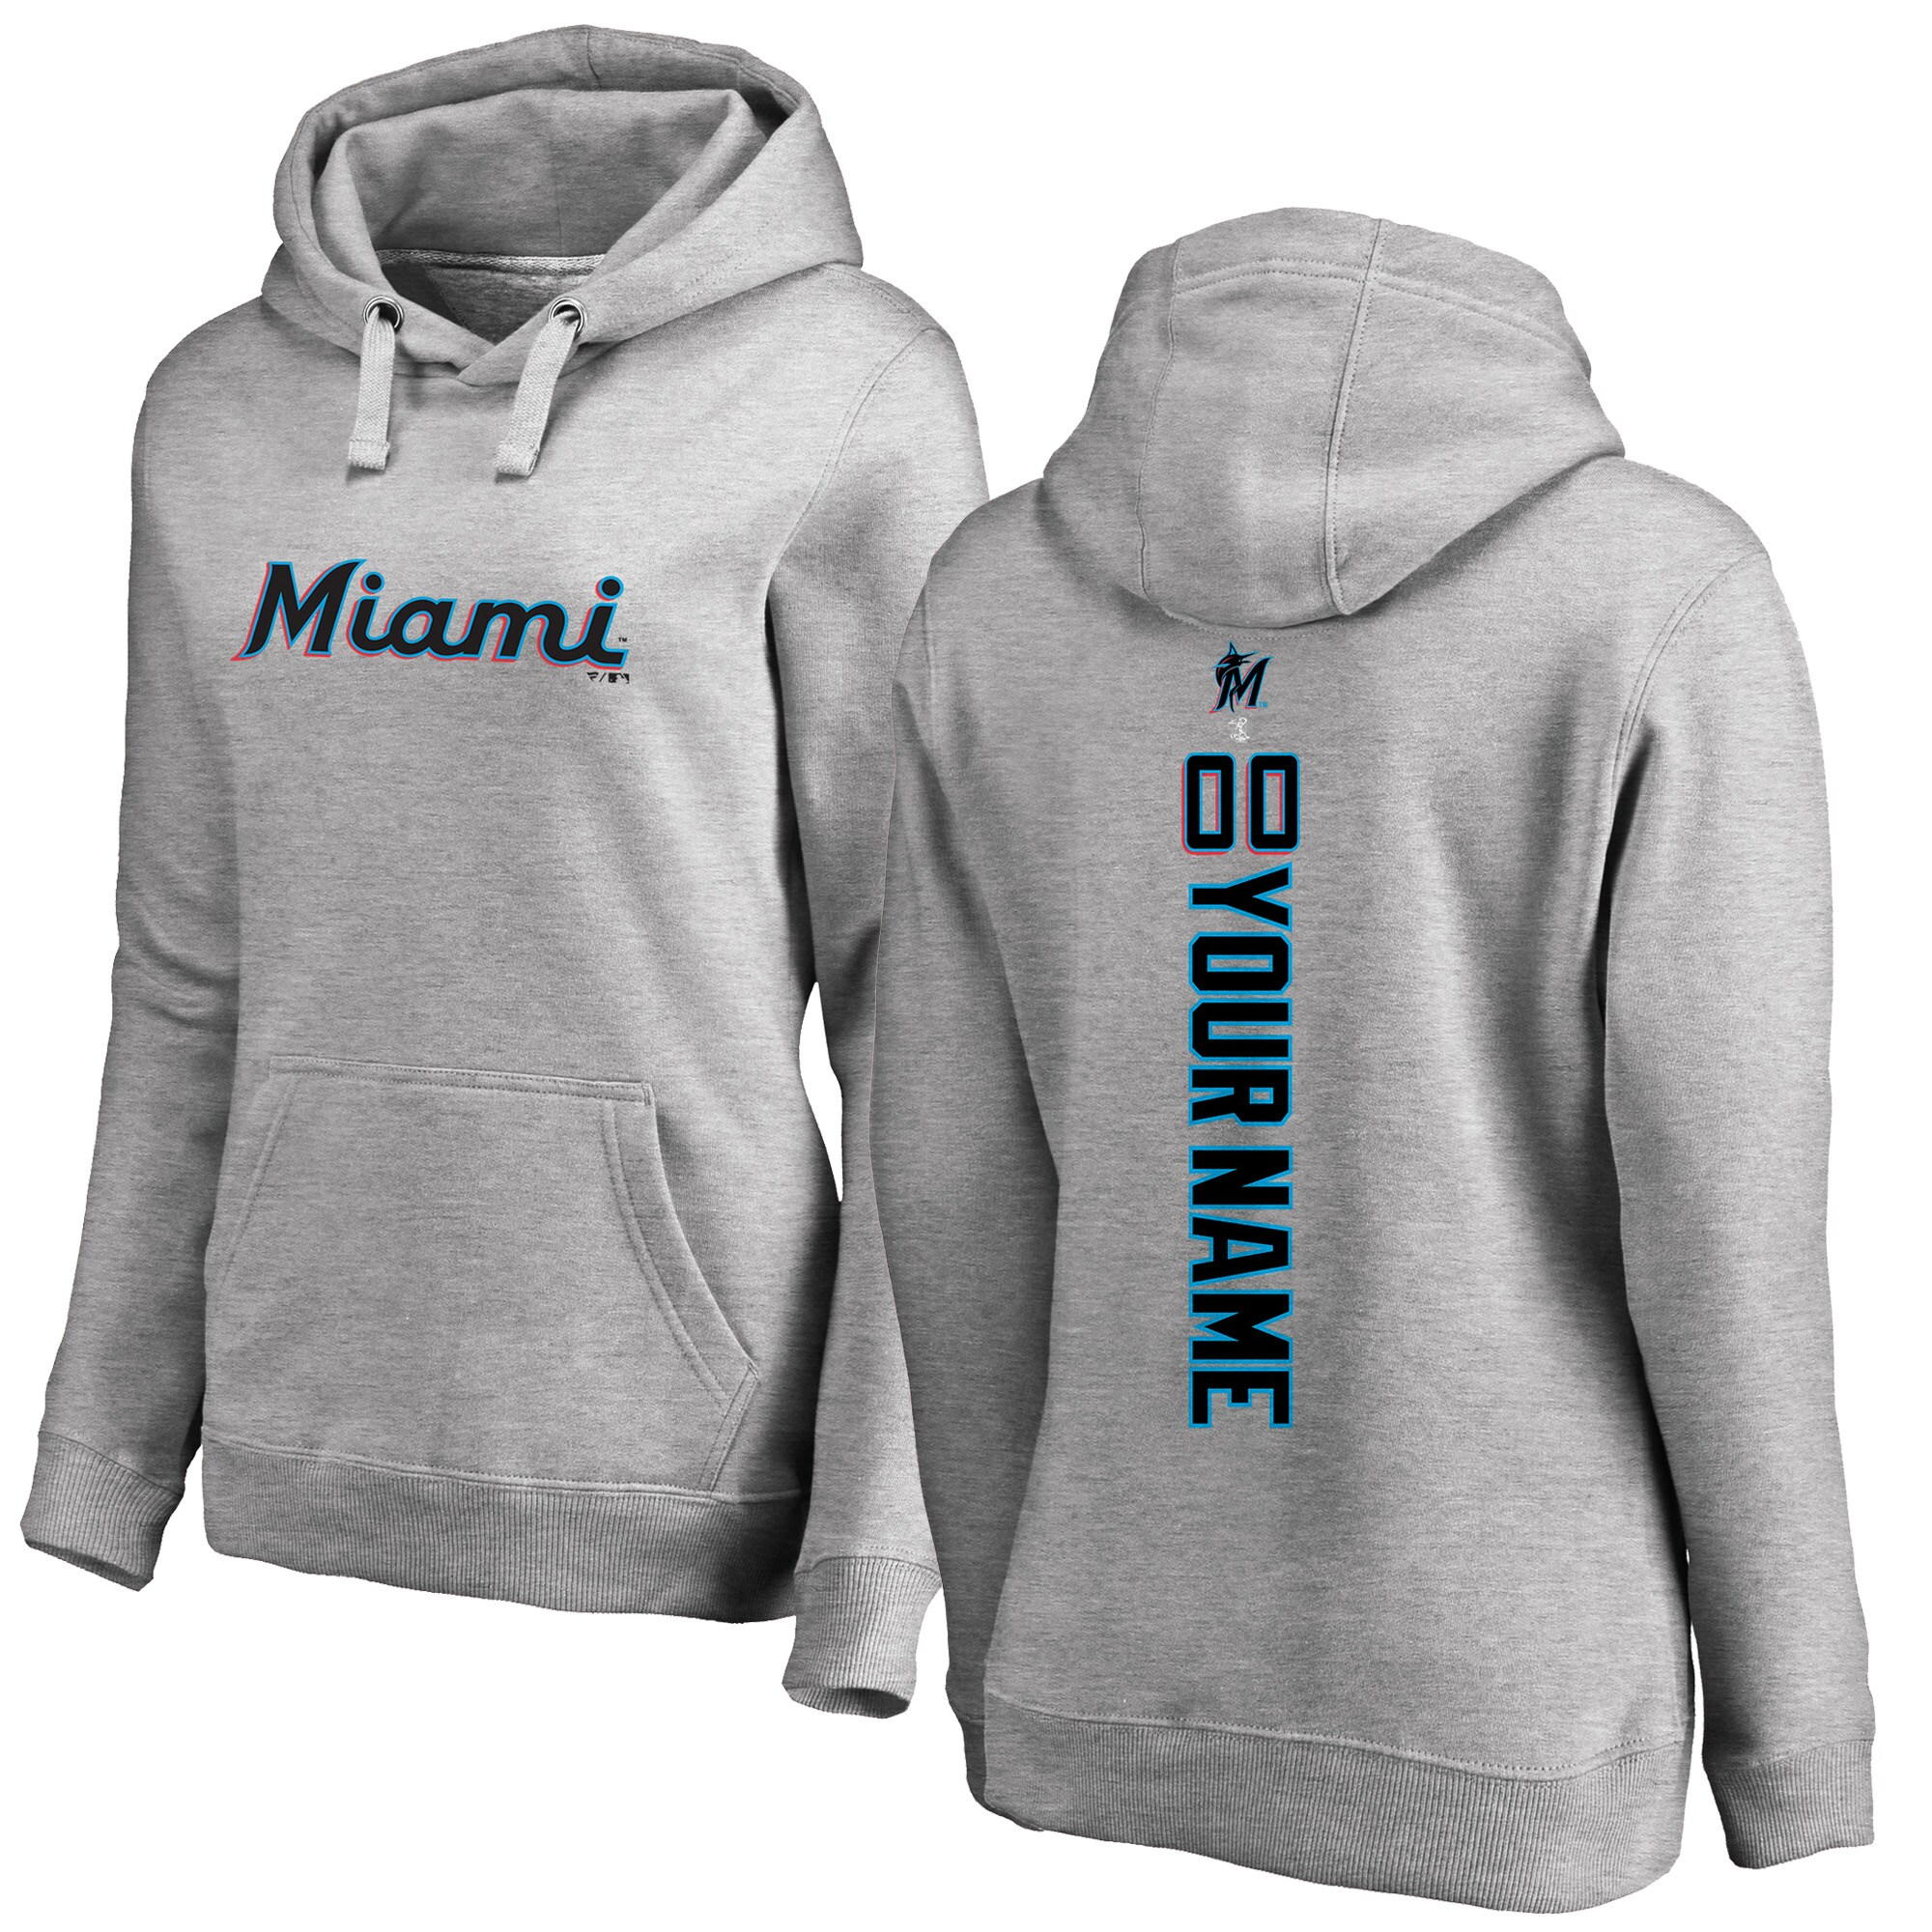 Miami Marlins Fanatics Branded Women's Personalized Playmaker Pullover Hoodie - Heather Gray